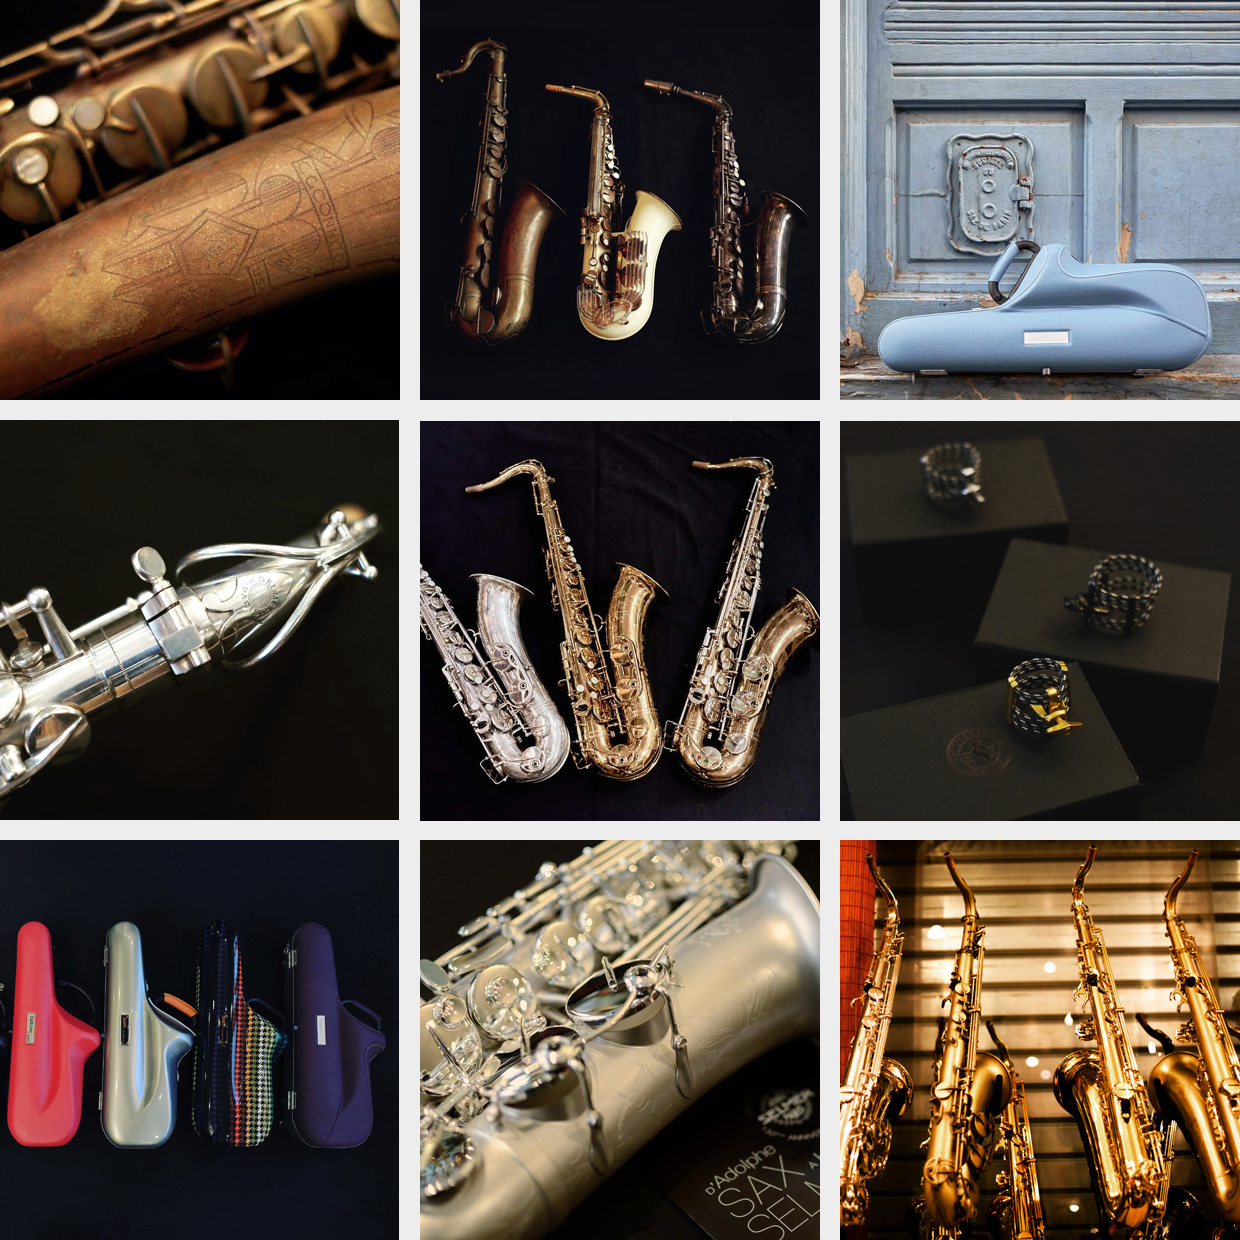 Sax Machine Paris - Saxophone Specialist